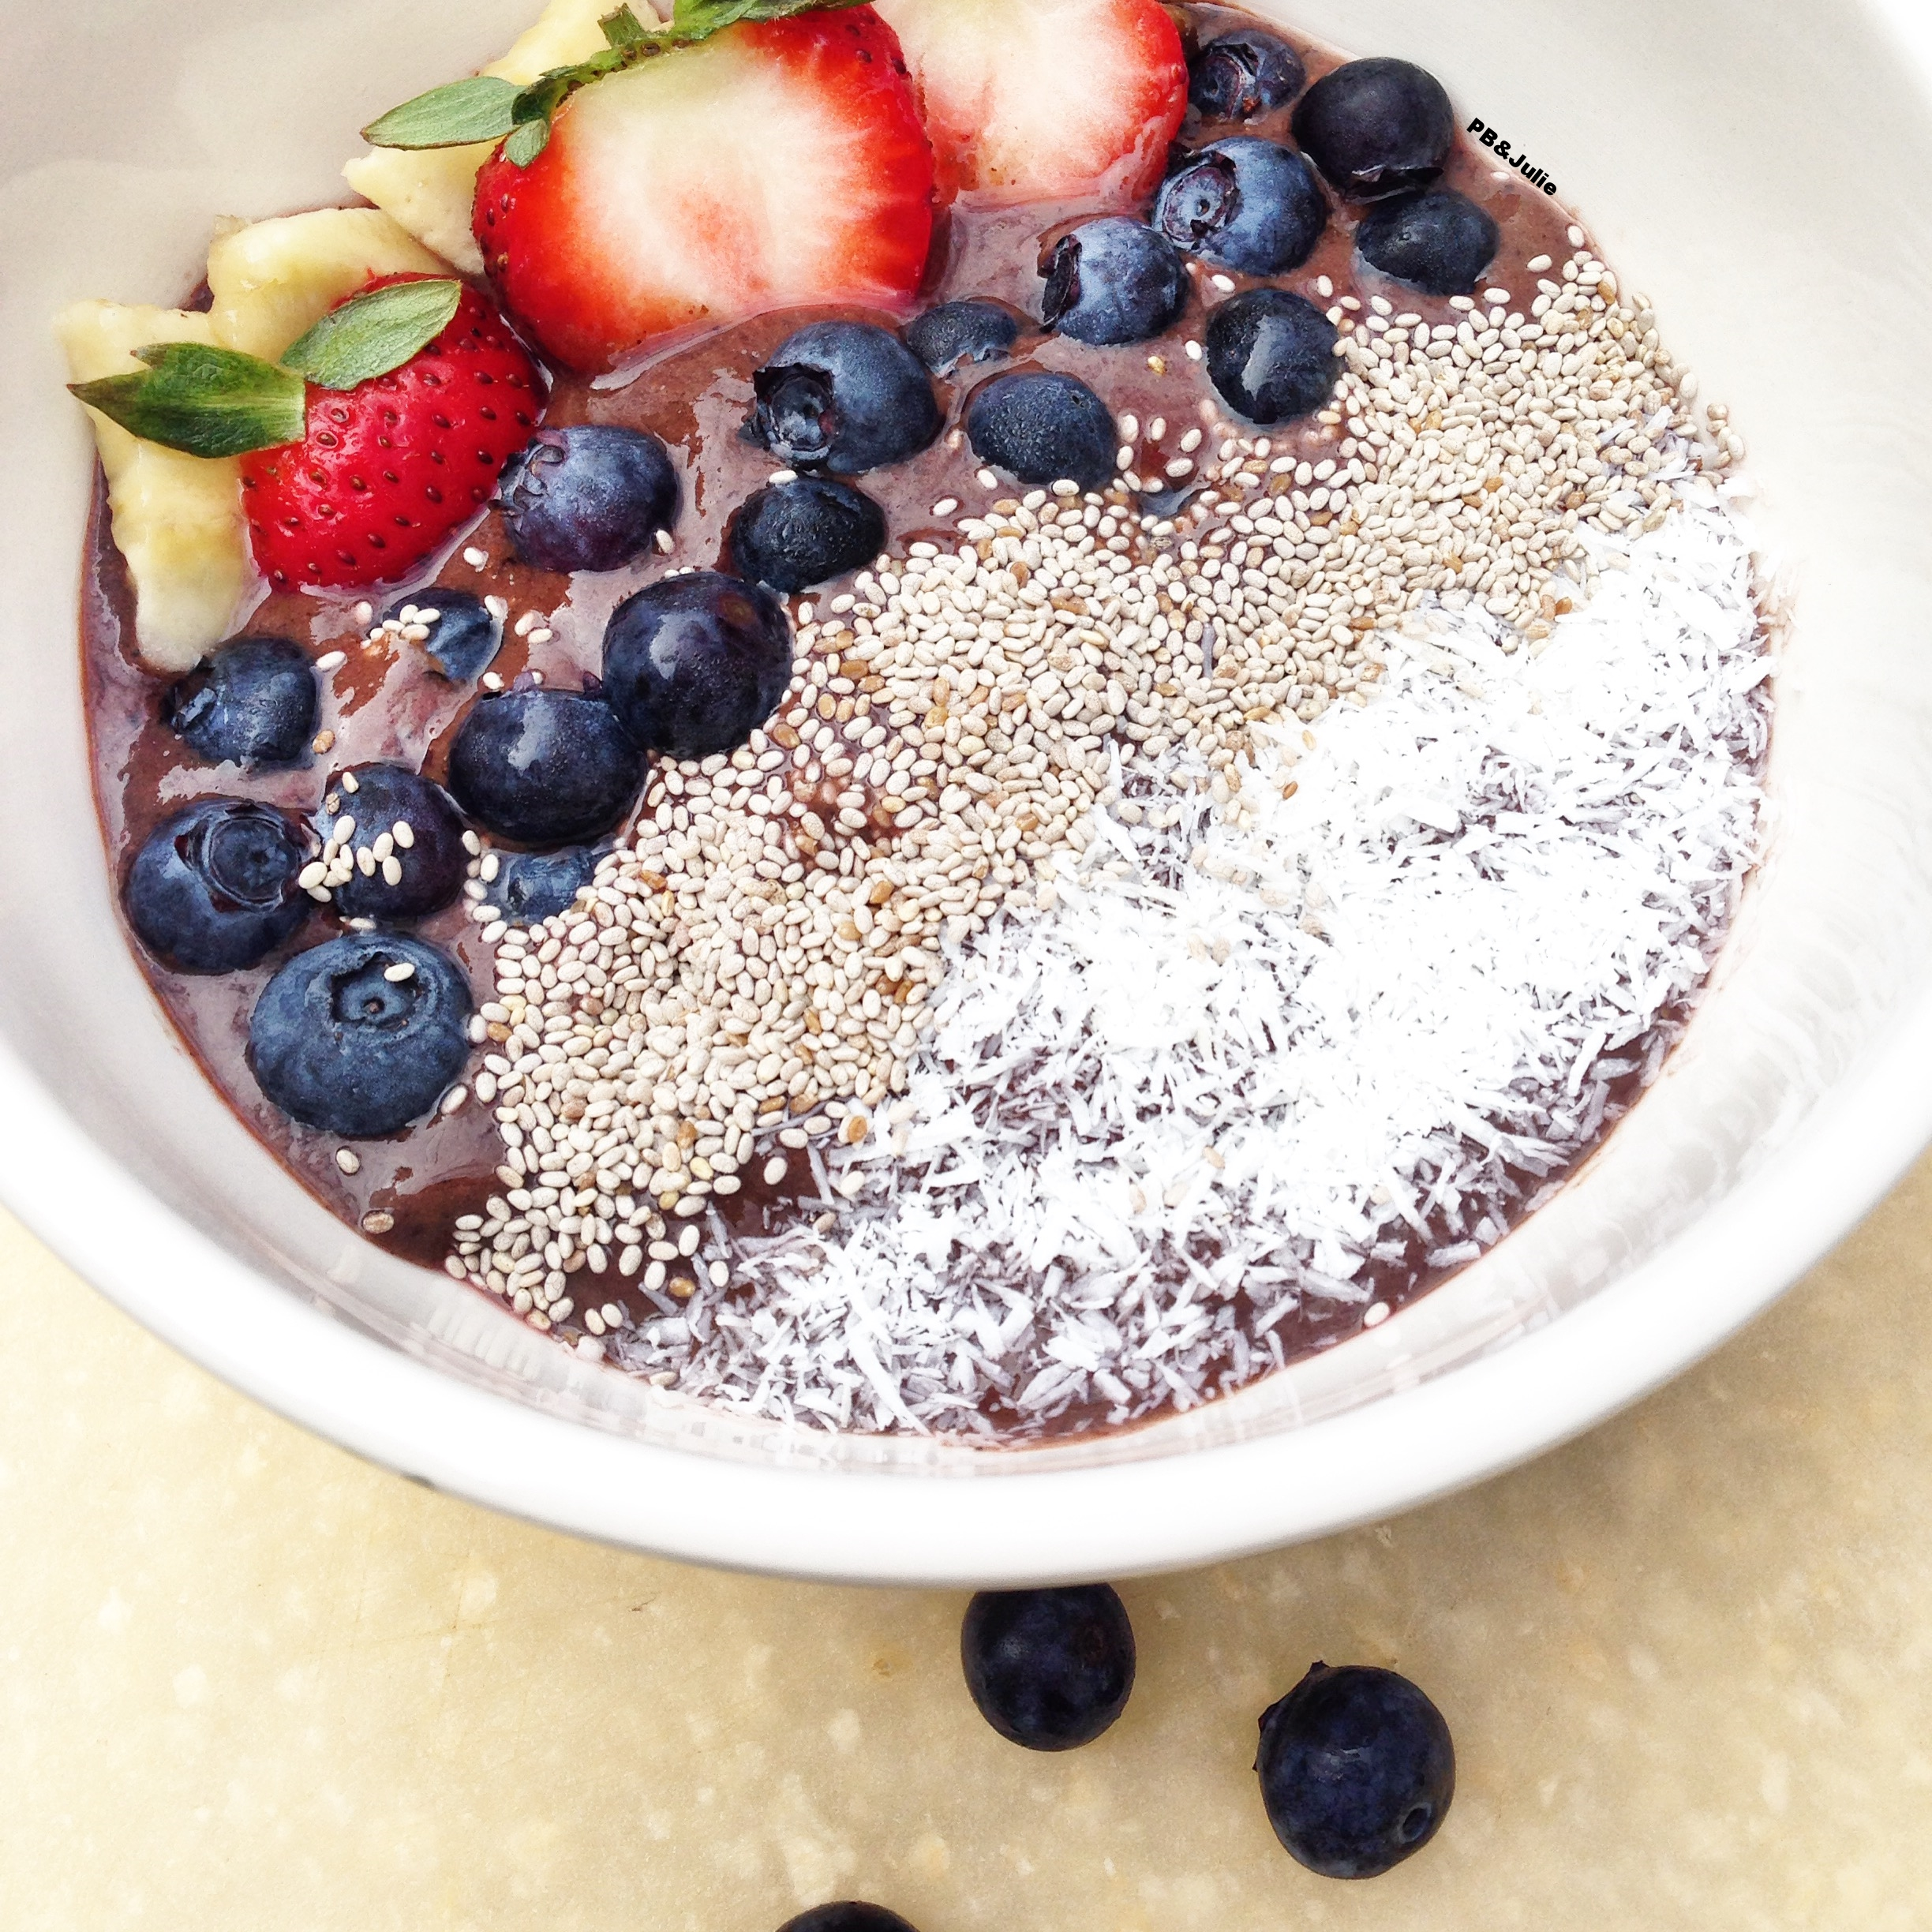 PB&Julie's Mango Acai Bowl with fresh organic berries, omega rich chia seeds and satisfyingly tropical coconut shreds. Love your body.